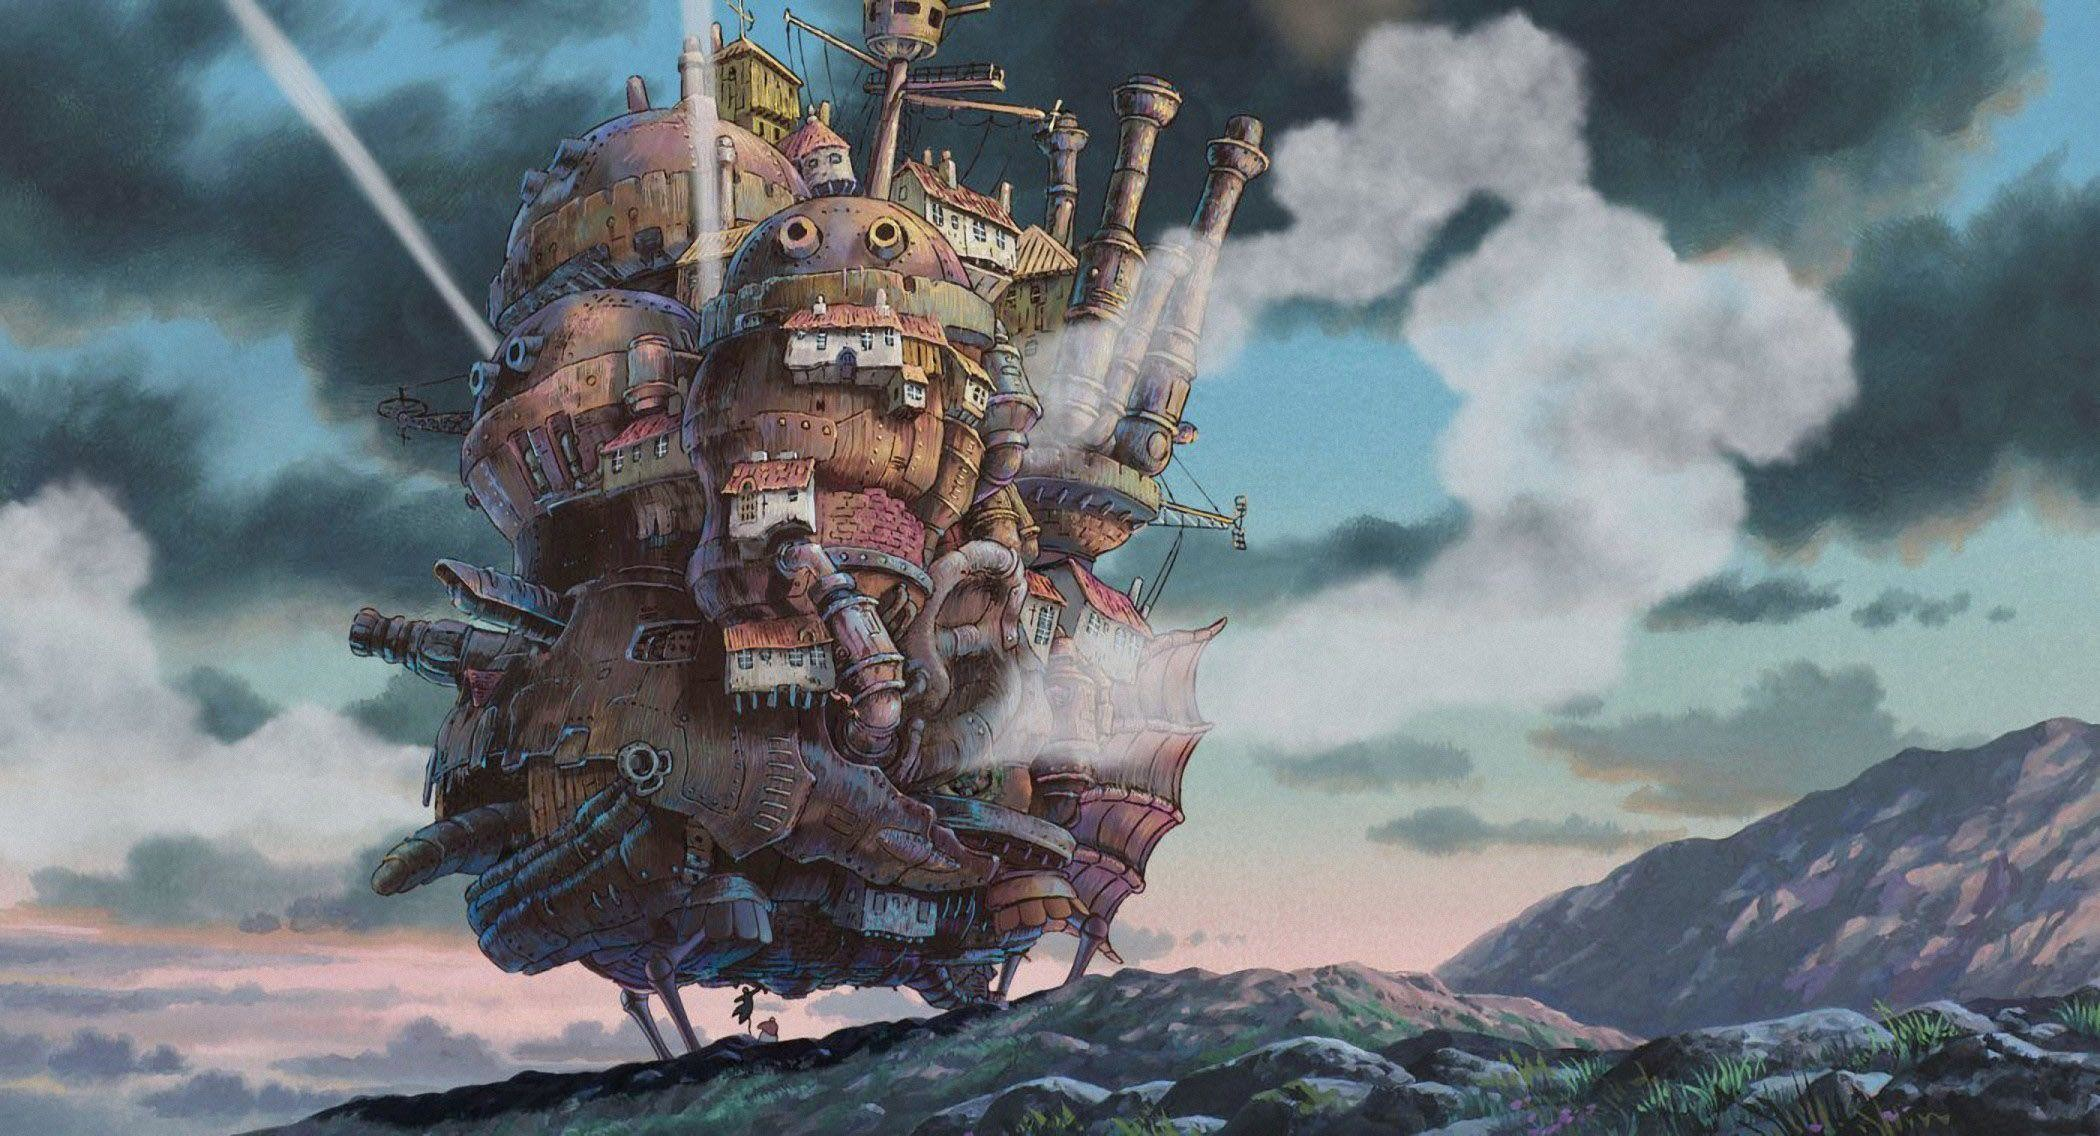 51 Howl's Moving Castle HD Wallpapers | Backgrounds – Wallpaper Abyss